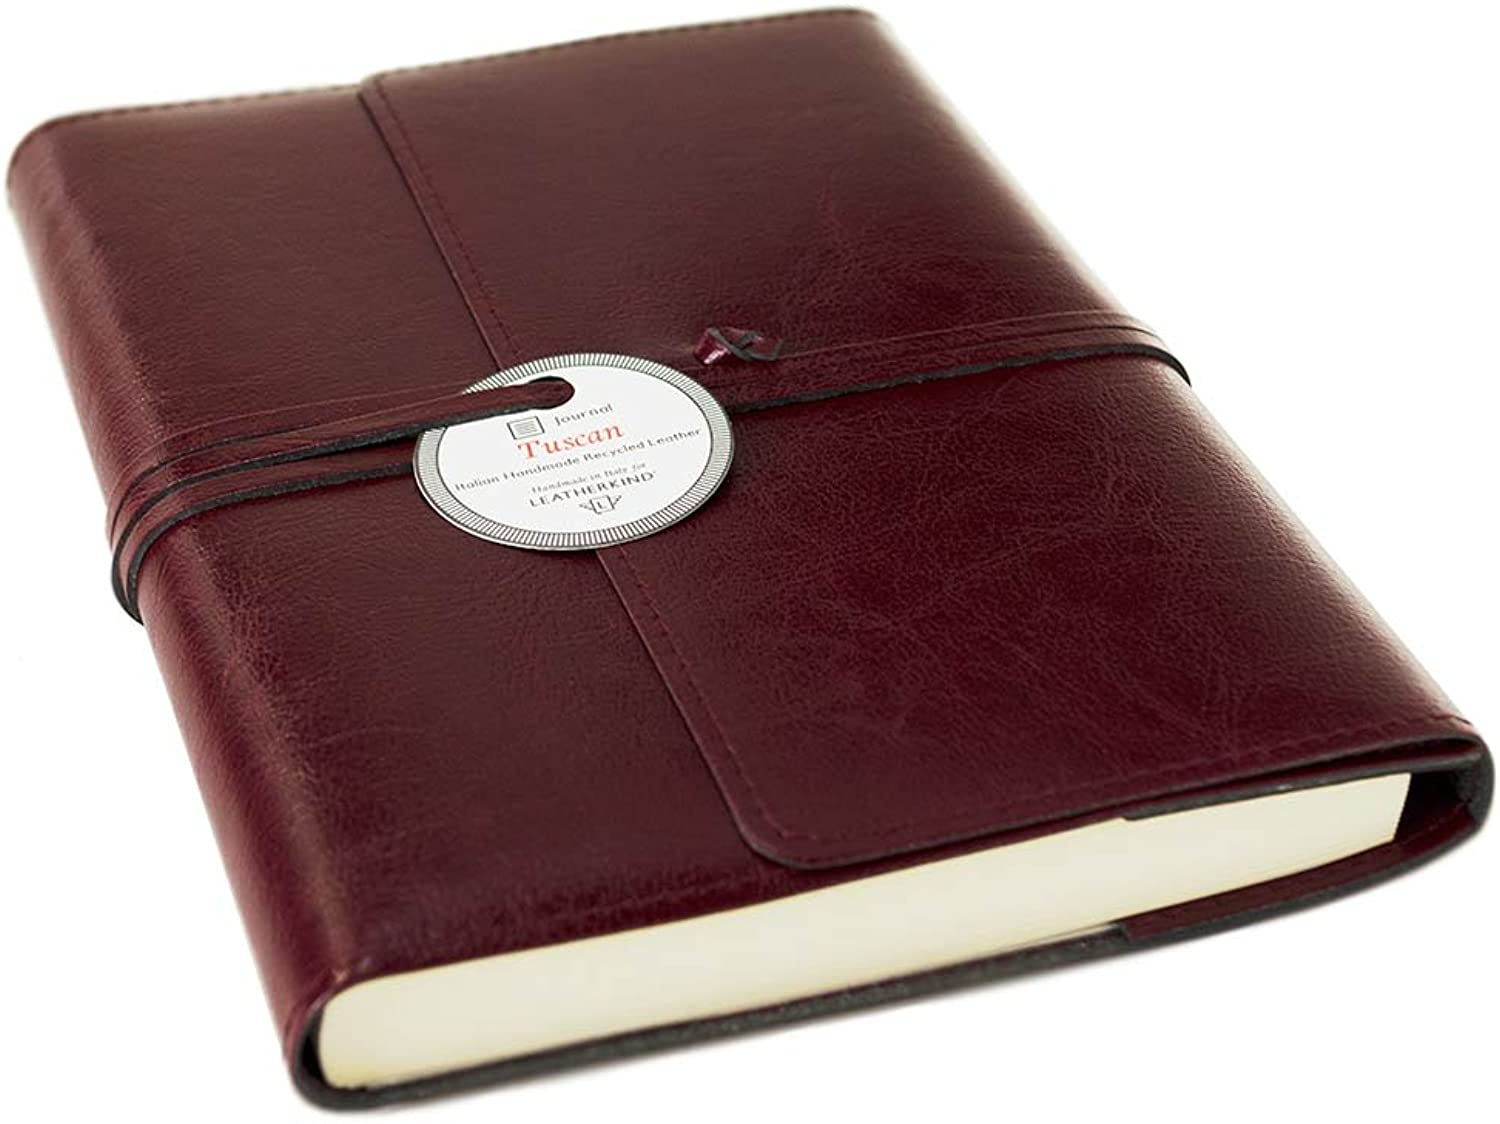 LEATHERKIND Tuscan Recycled Leather Refillable Journal Burgundy, A5 Plain Pages - Handmade in